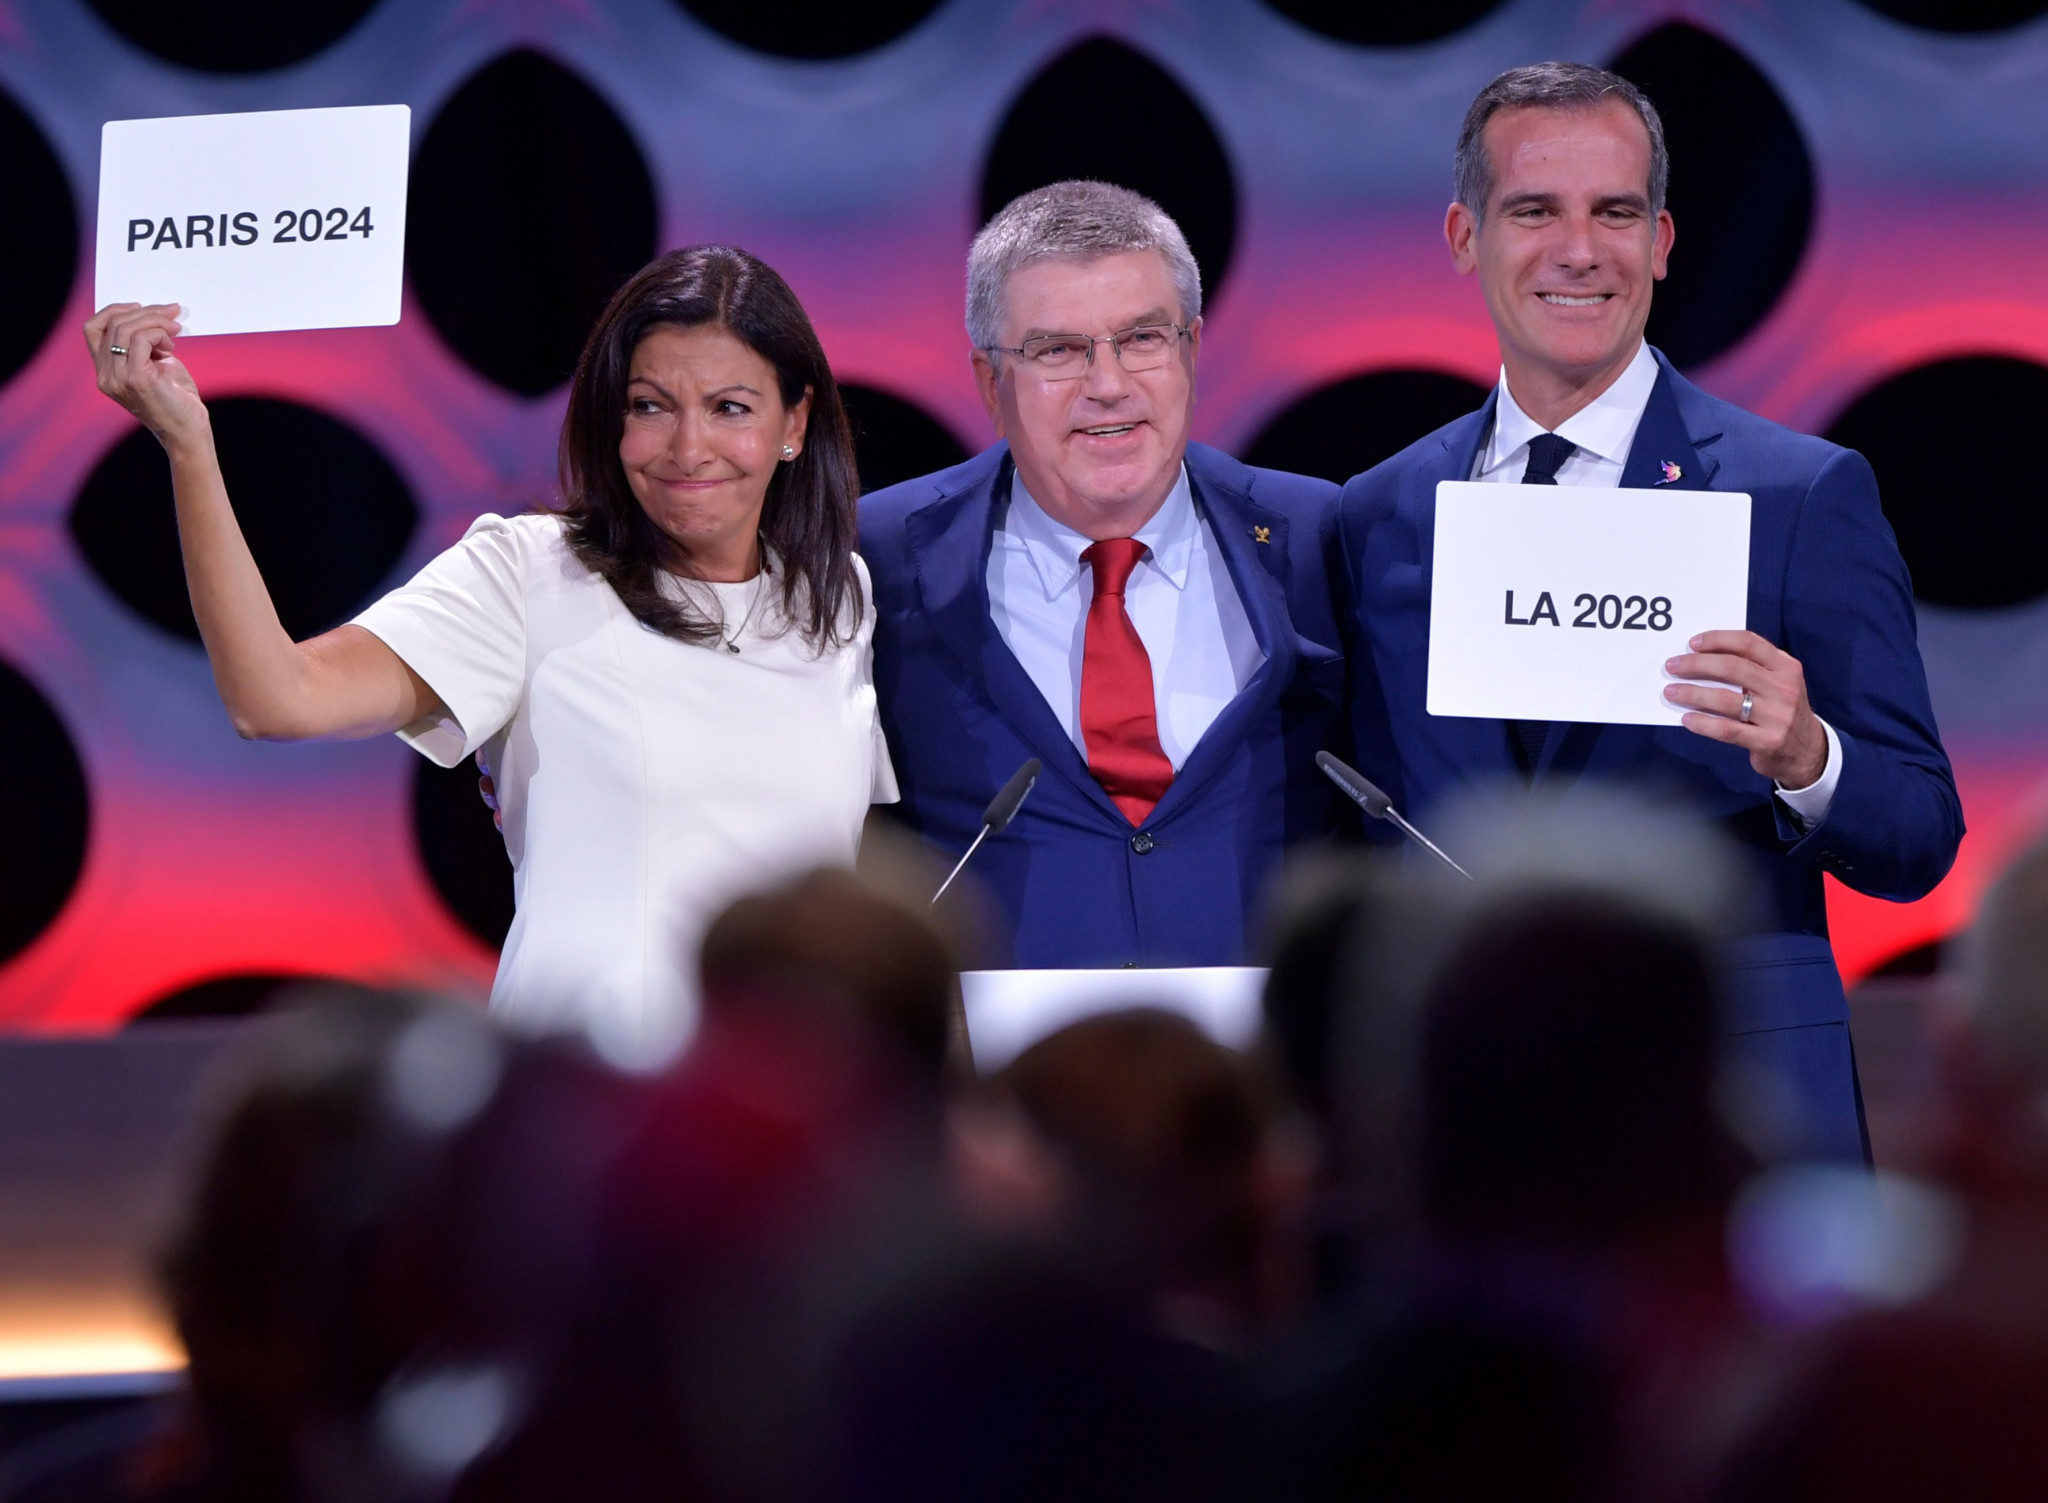 Los Angeles 2028 preparing for brand launch but youth sports programme delayed